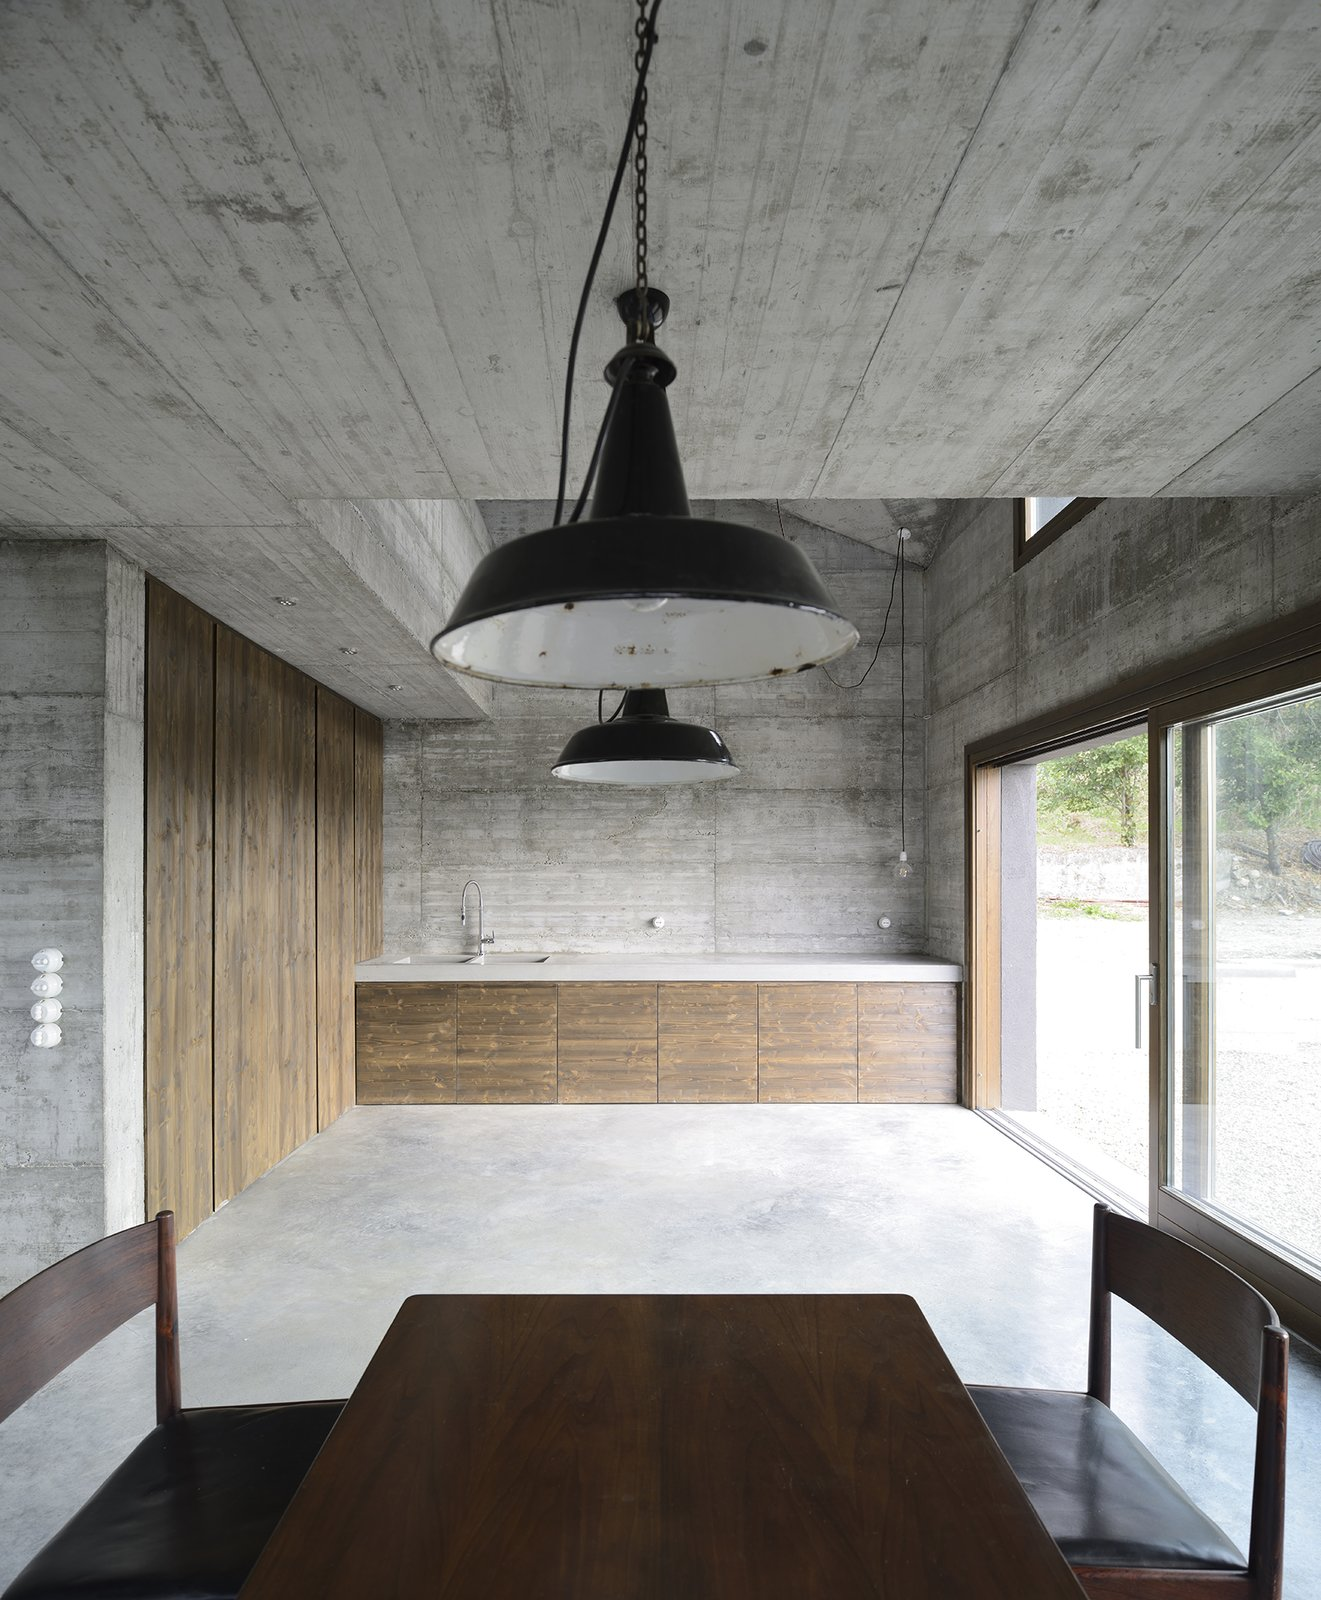 Tagged: Kitchen, Wood Counter, Concrete Counter, Concrete Floor, Table Lighting, Pendant Lighting, Ceiling Lighting, and Dishwasher.  HOUSE R